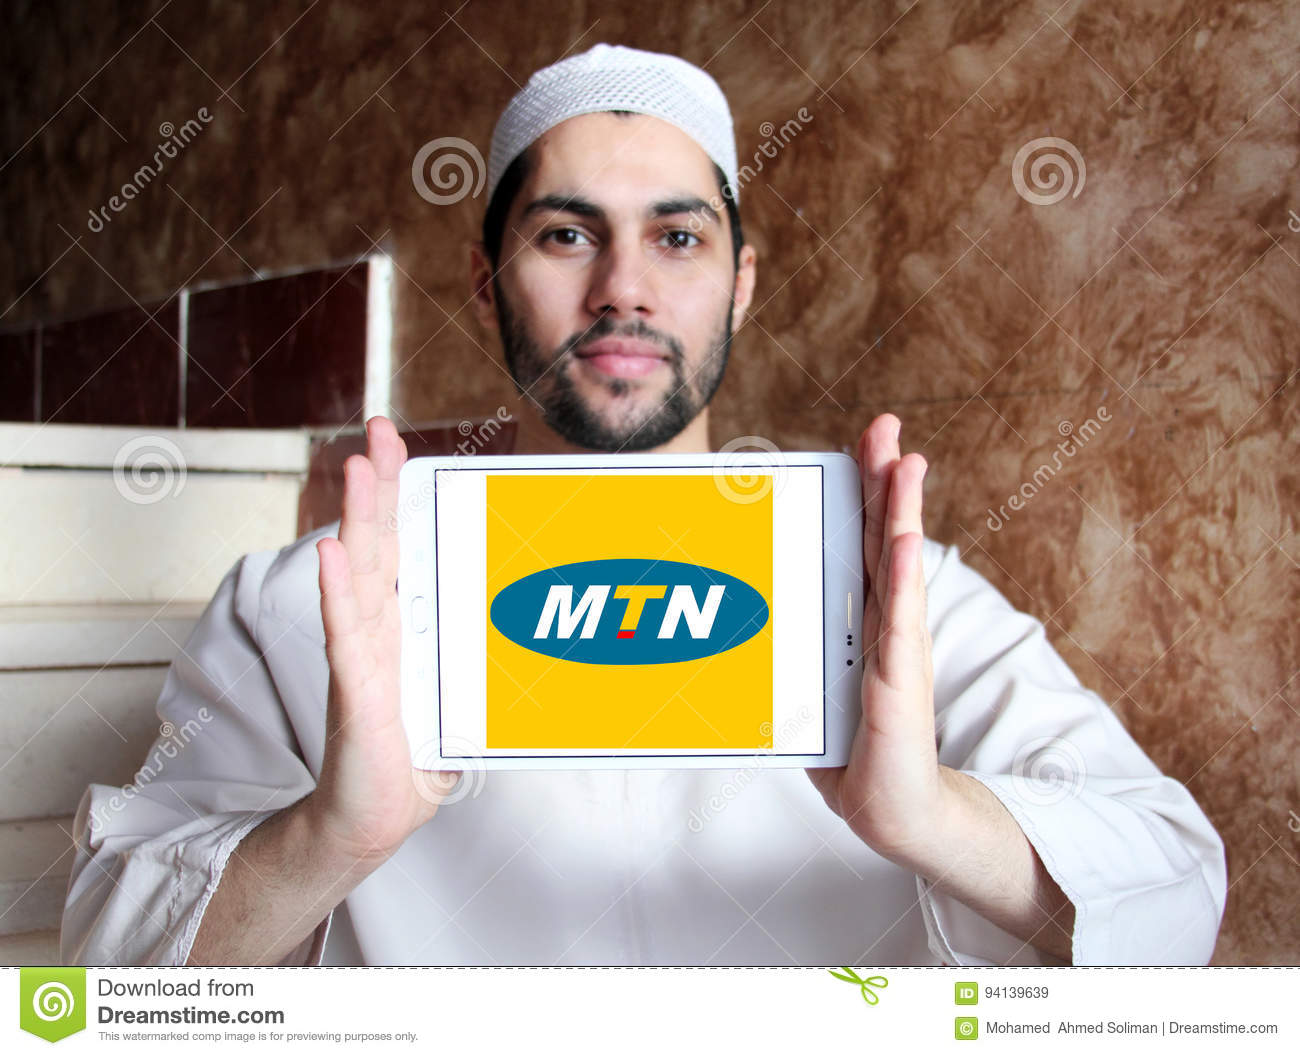 Mtn mobile operator logo editorial stock image  Image of